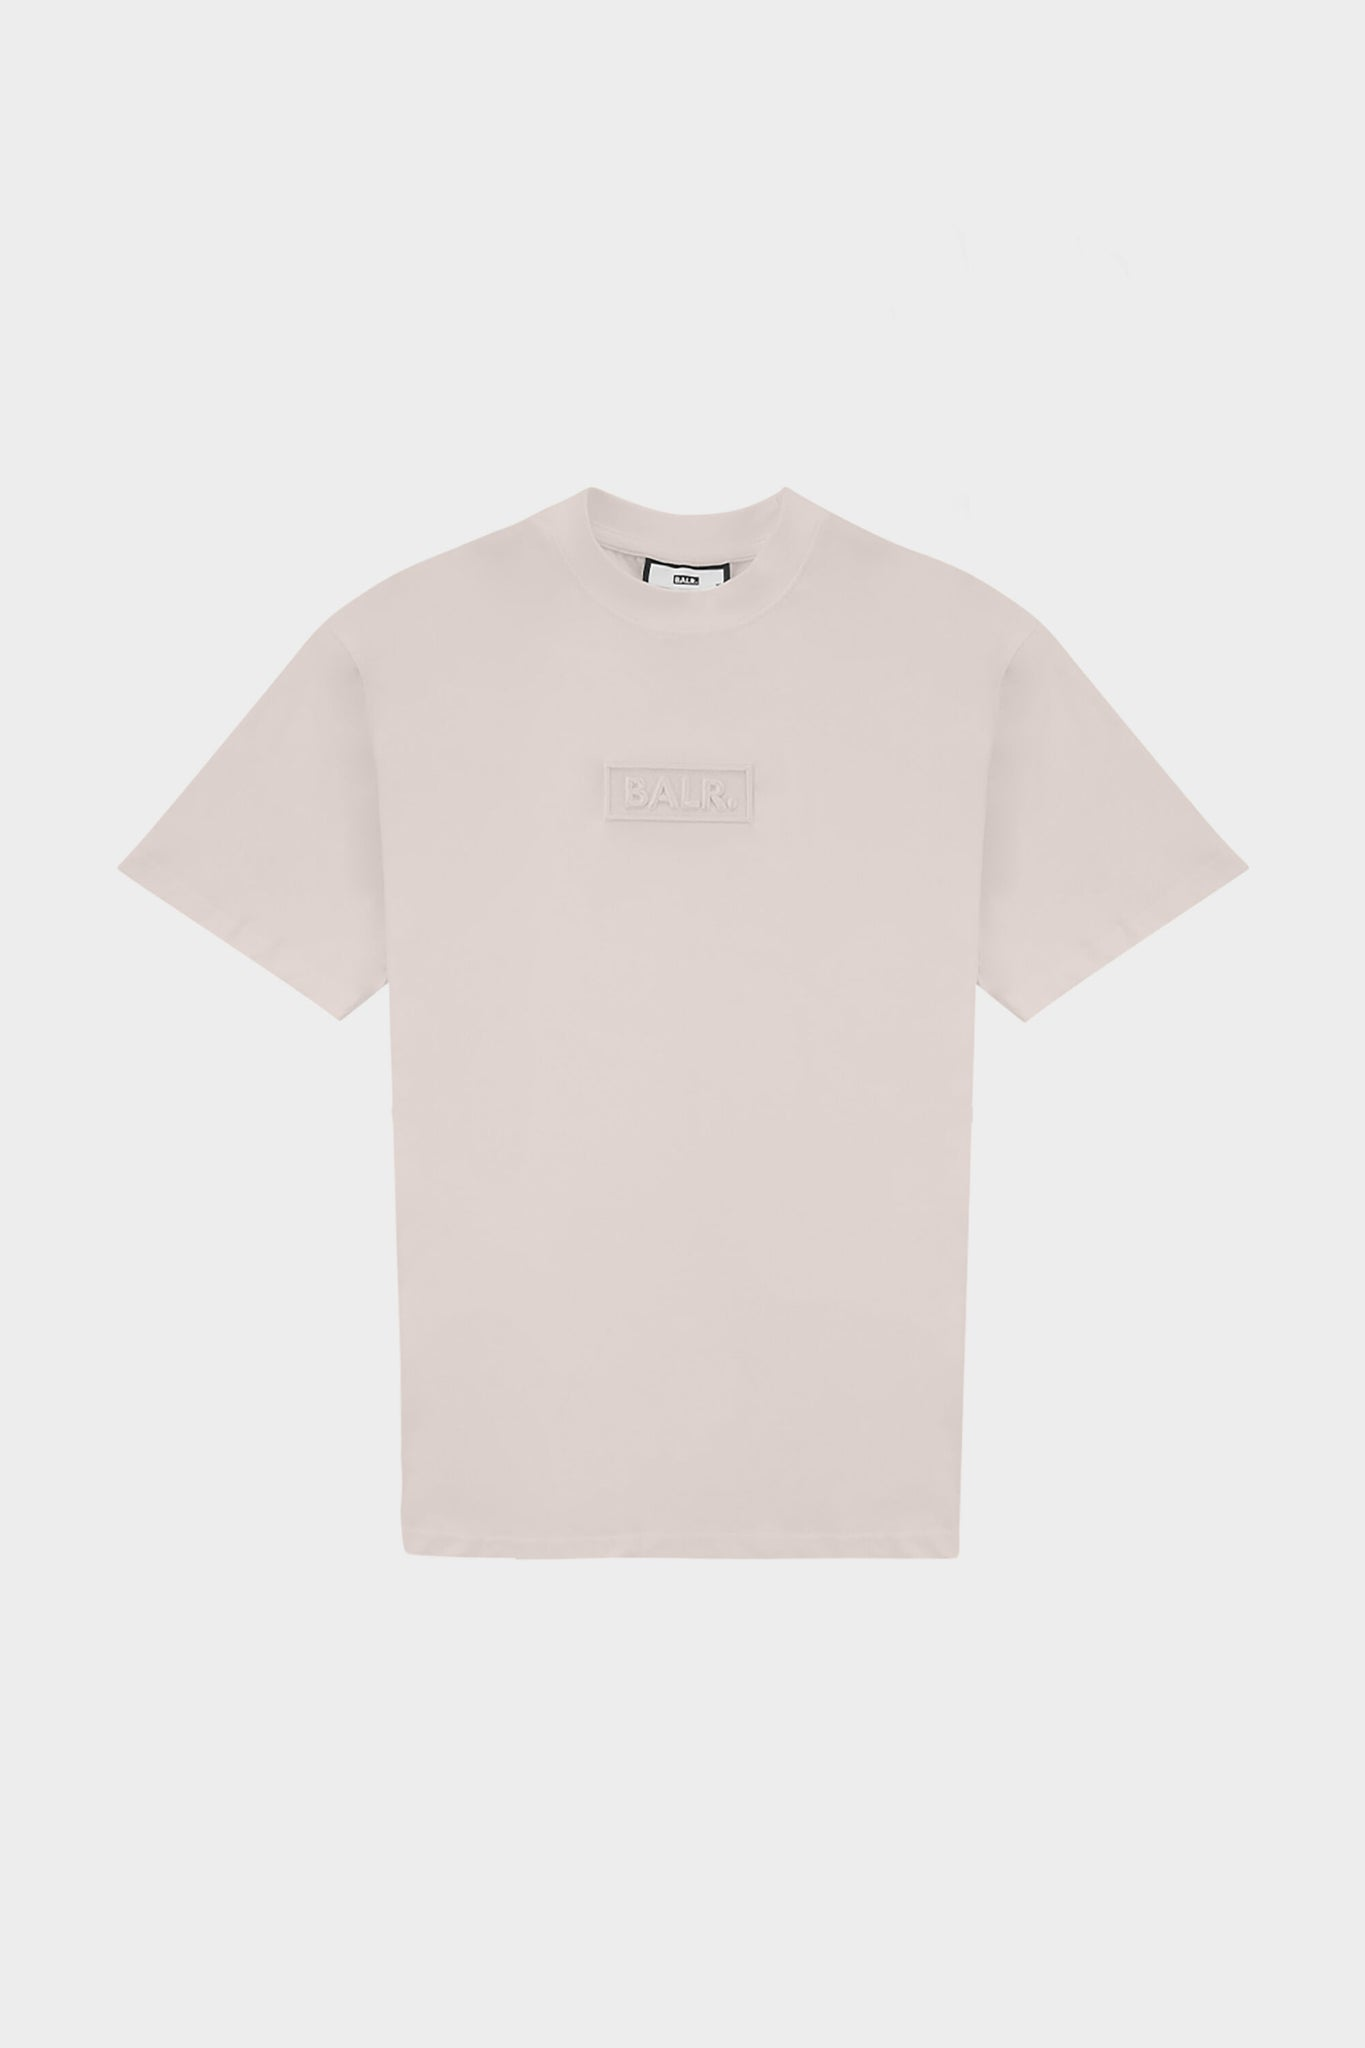 Club Embro Box Fit T-Shirt White Swan